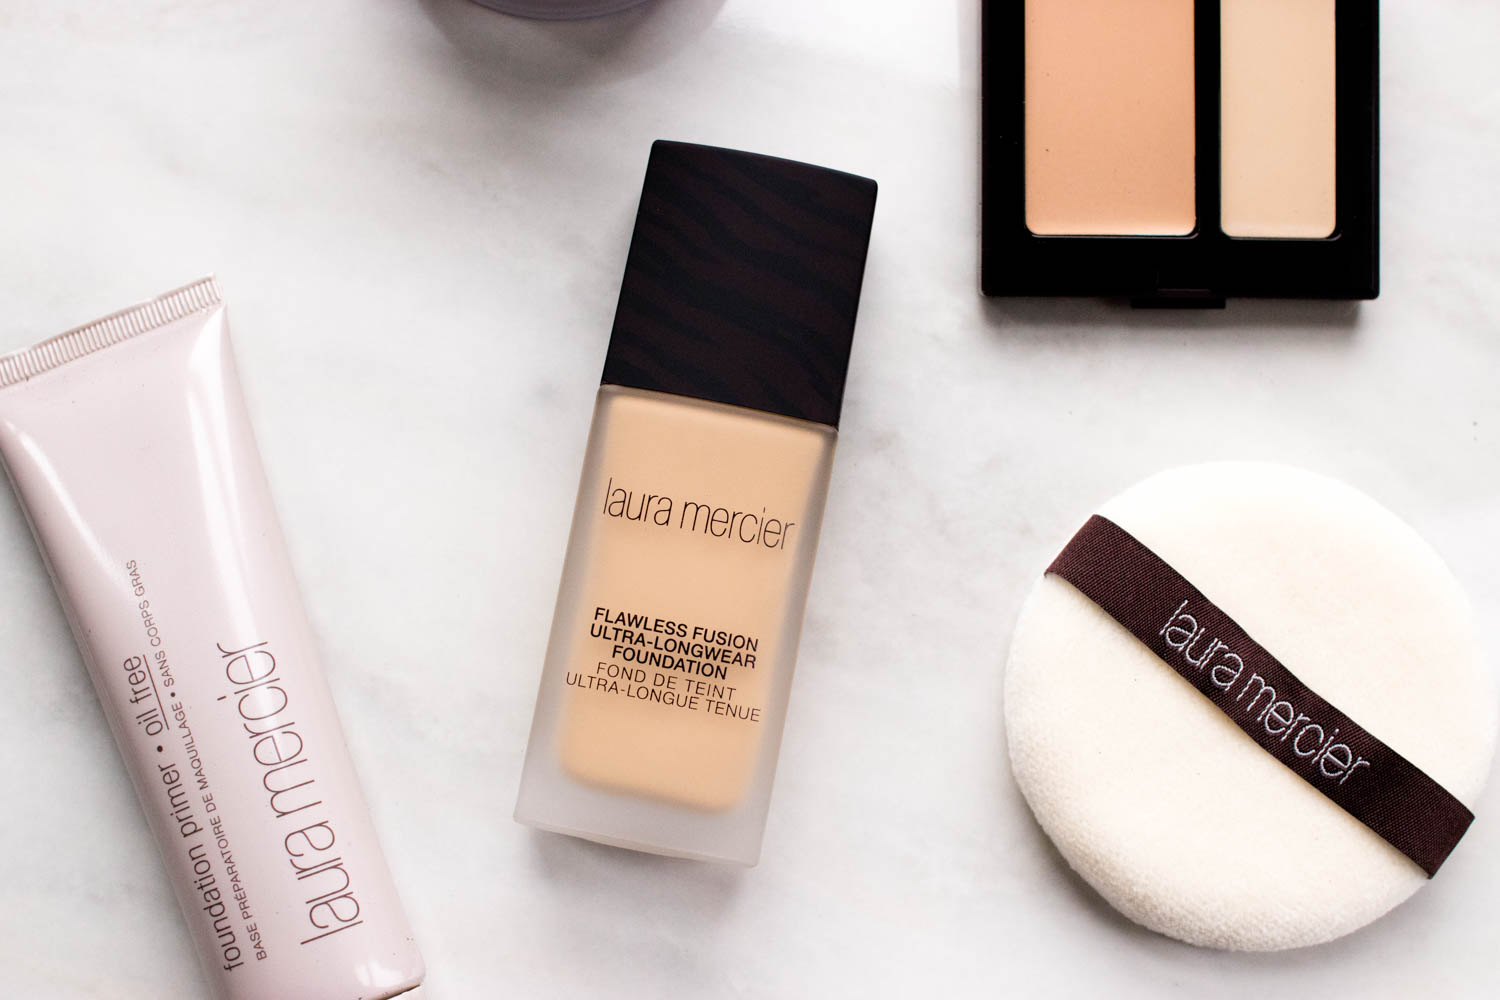 Laura Mercier Flawless Fusion Ultra Longwear Foundation